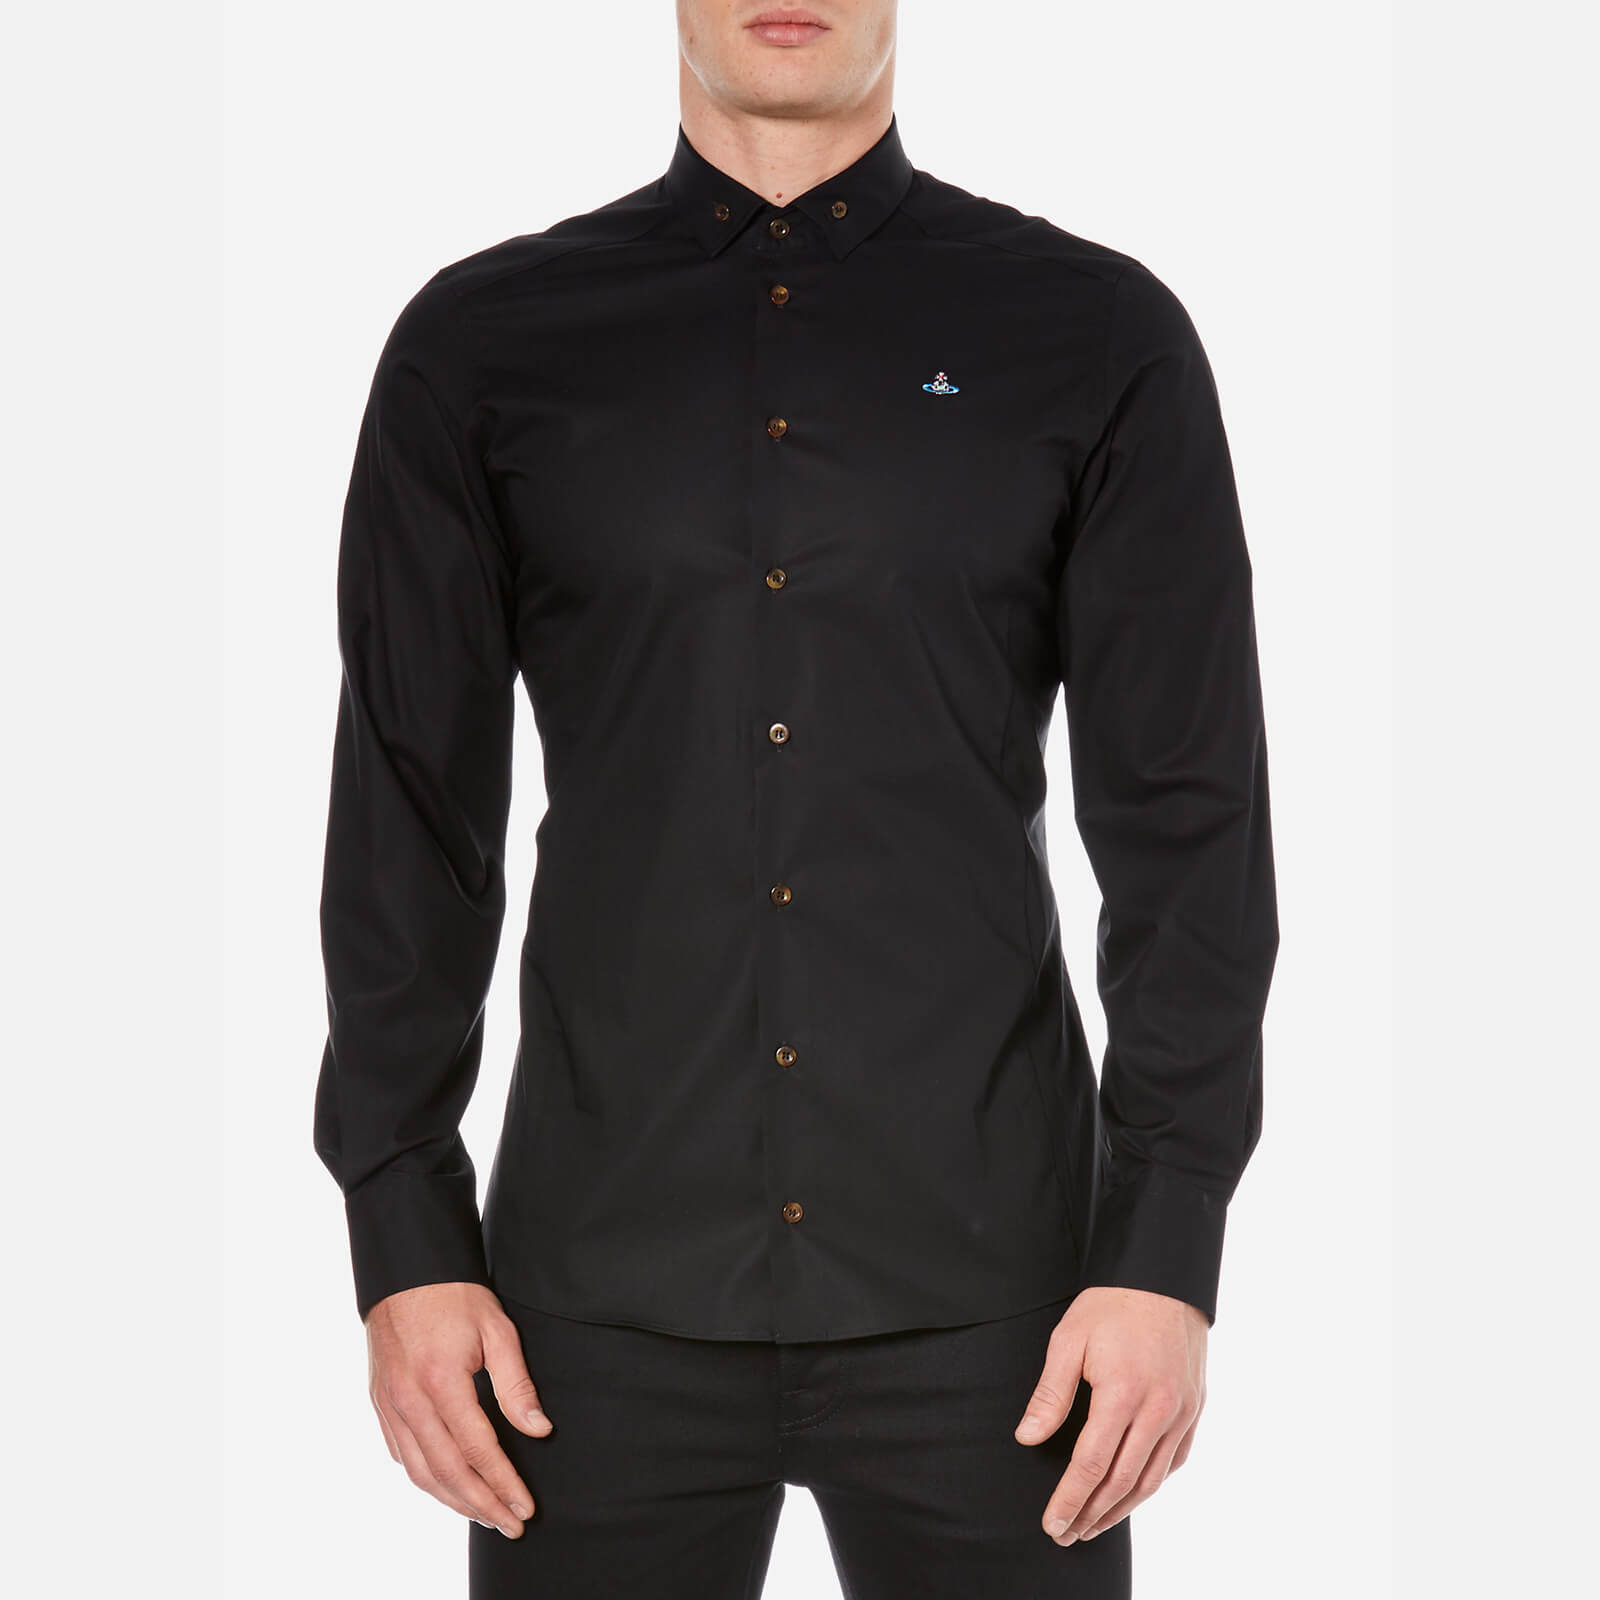 838c7c4ad66bc Vivienne Westwood Men s Stretch Poplin Long Sleeve Shirt - Black - Free UK  Delivery over £50